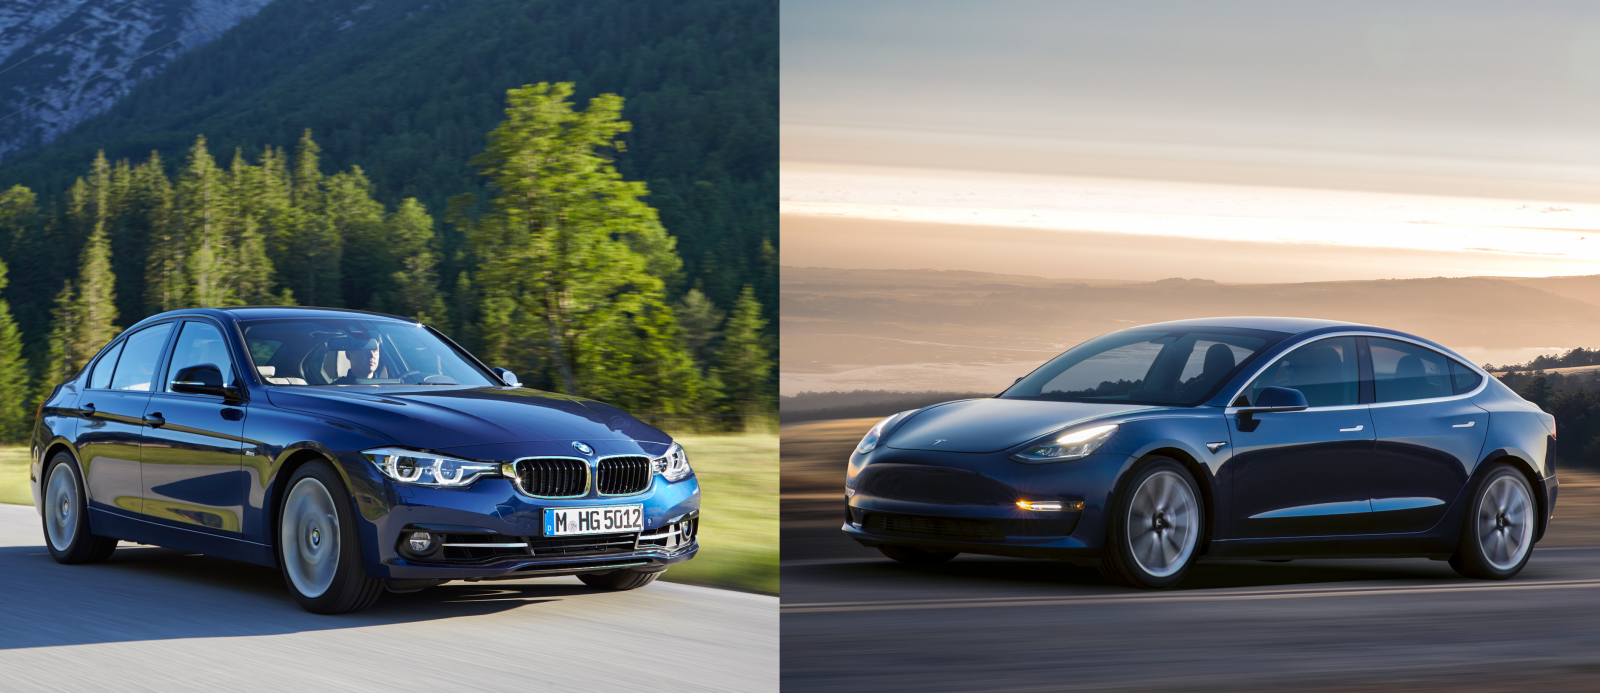 Tesla Tsla Surpes Bmw 8217 S Valuation As One Soar And The Other Slip